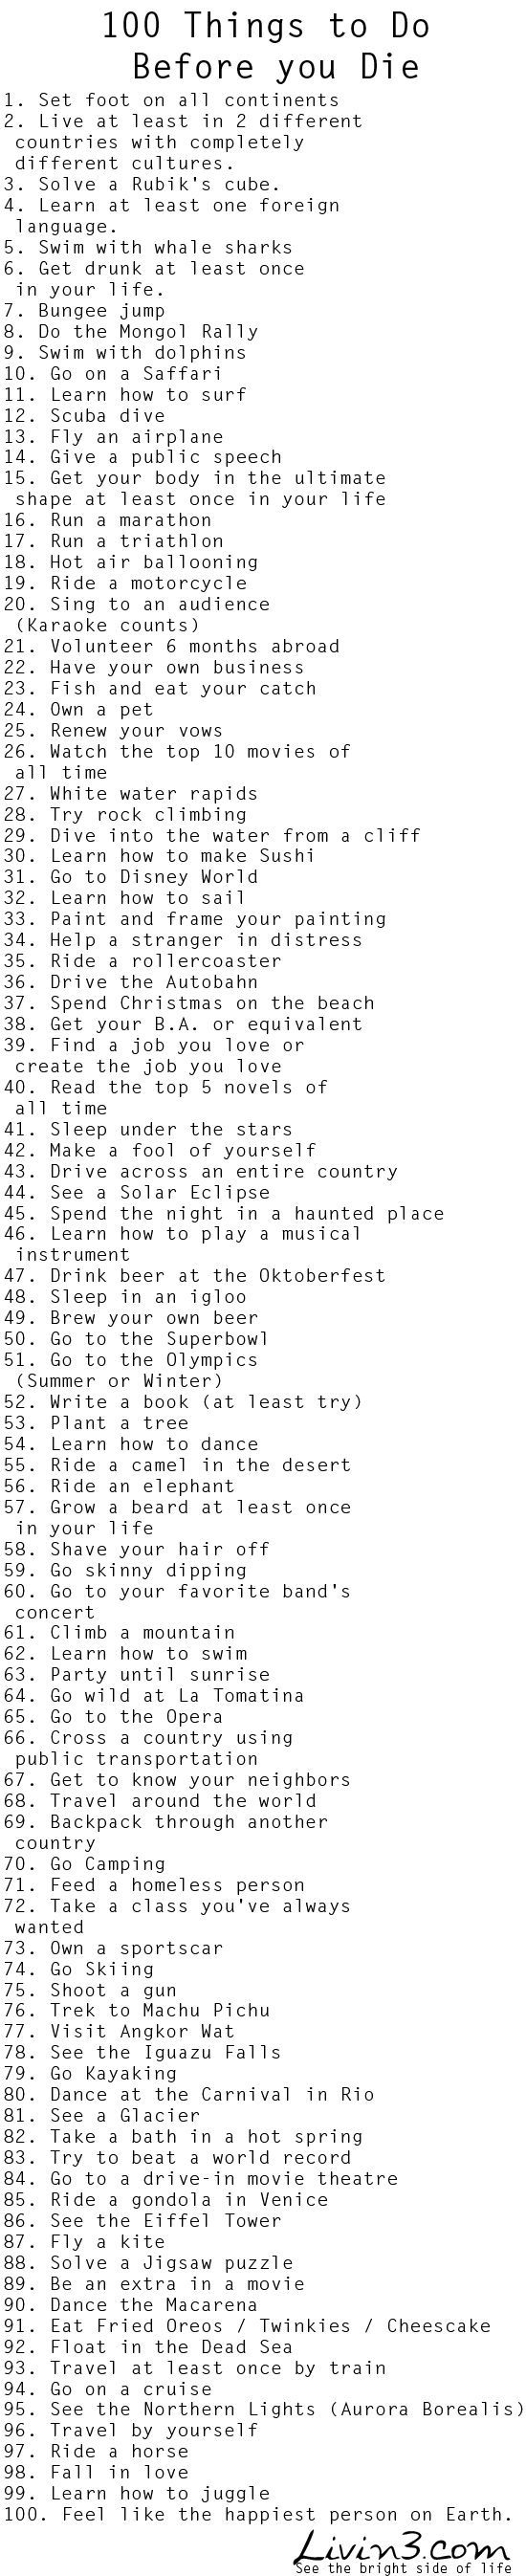 "100 Things to do before I die ""Bucket List""  Live Your Life. Ya know, except the beard one..."